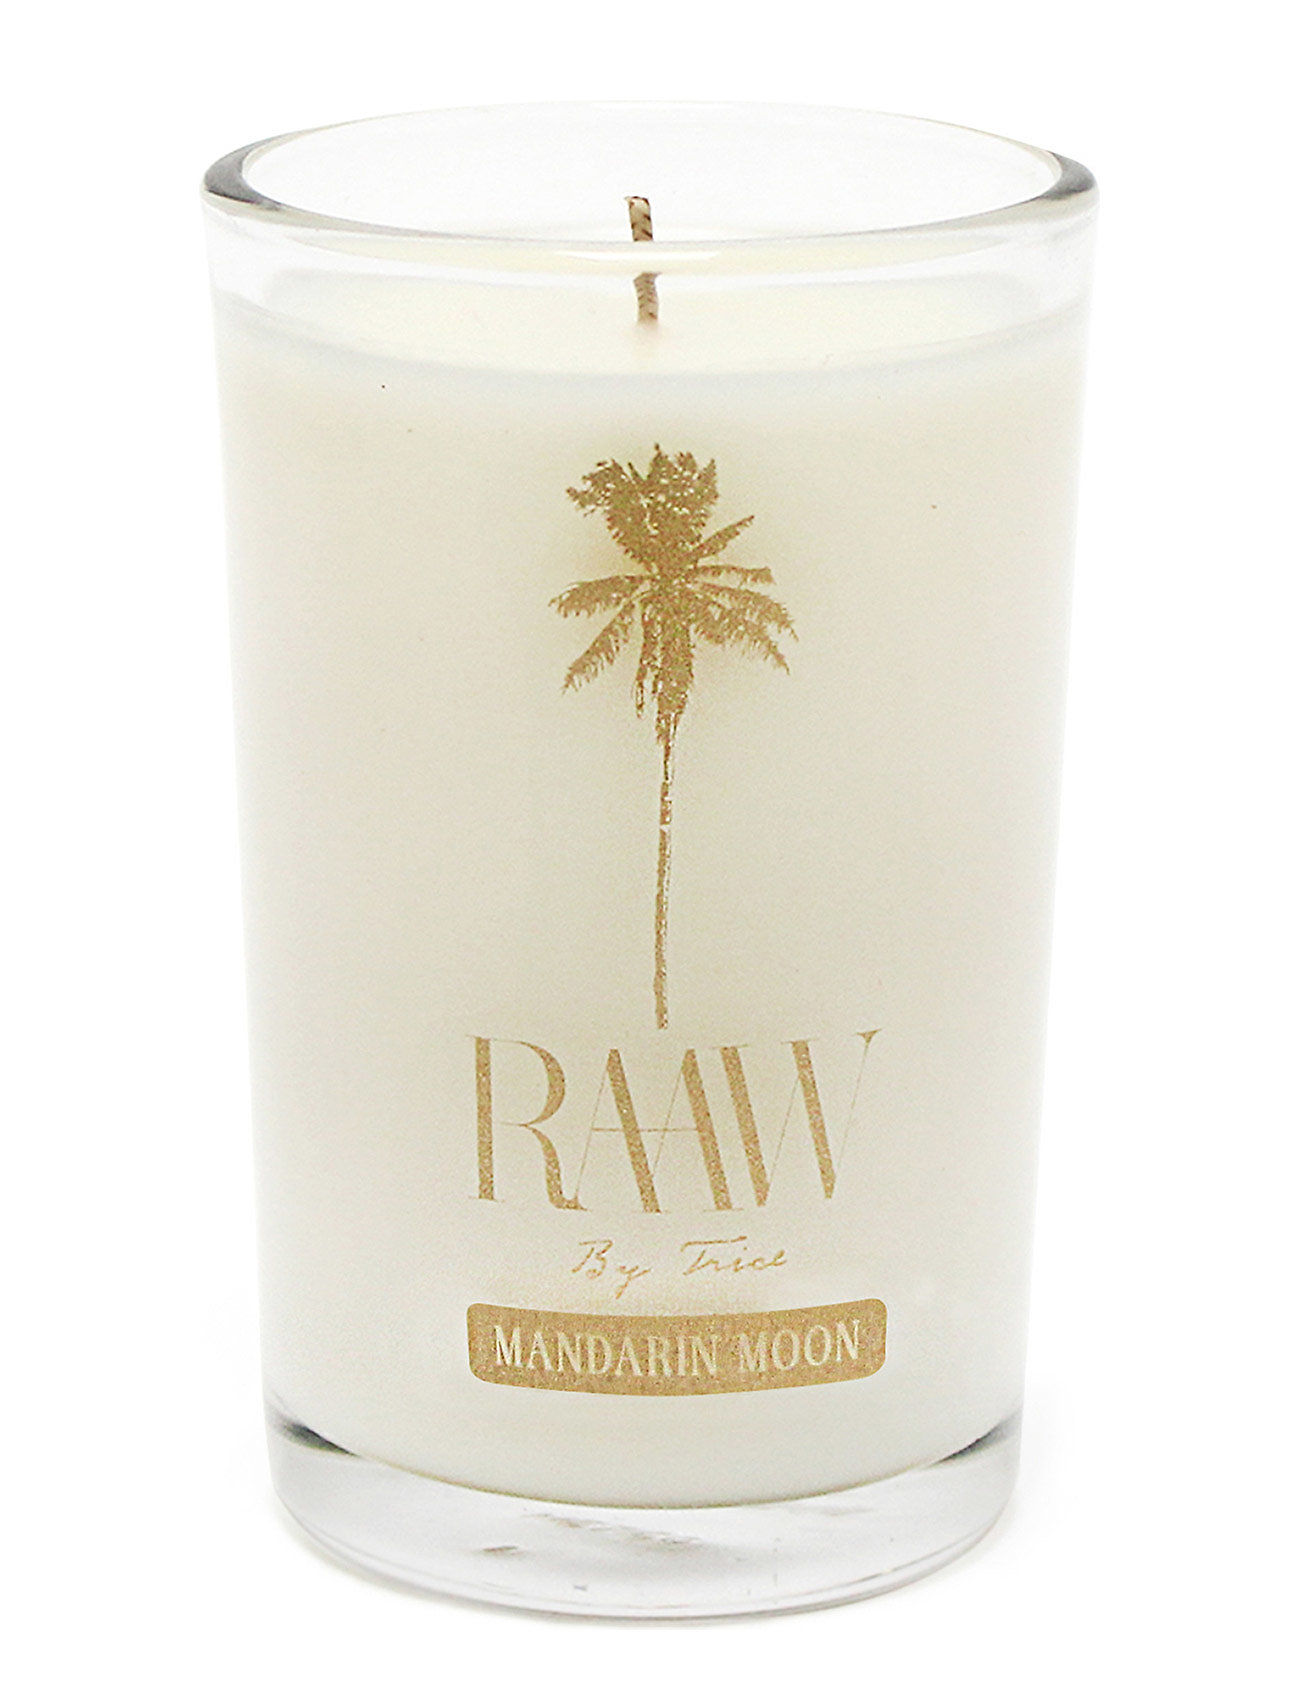 Raaw by Trice Mandarin Moon scented candle Home